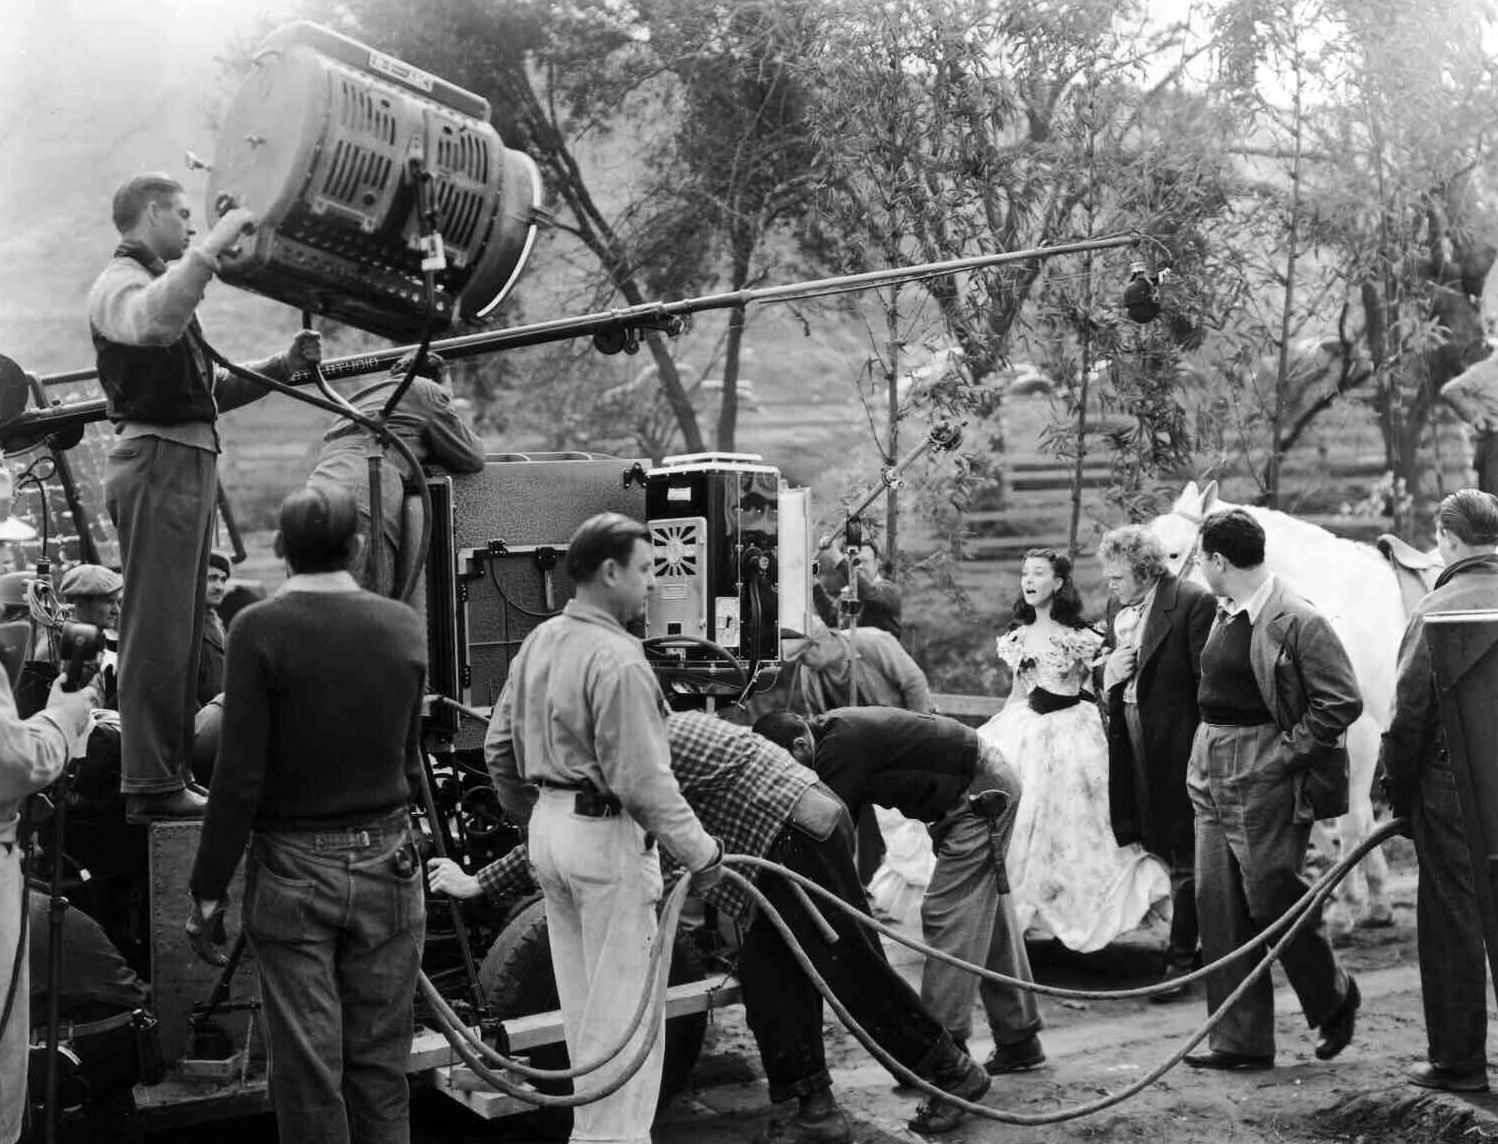 Vivien Leigh and Thomas Mitchell, as Gerald O'Hara, on the set of Gone with the Wind in 1939.